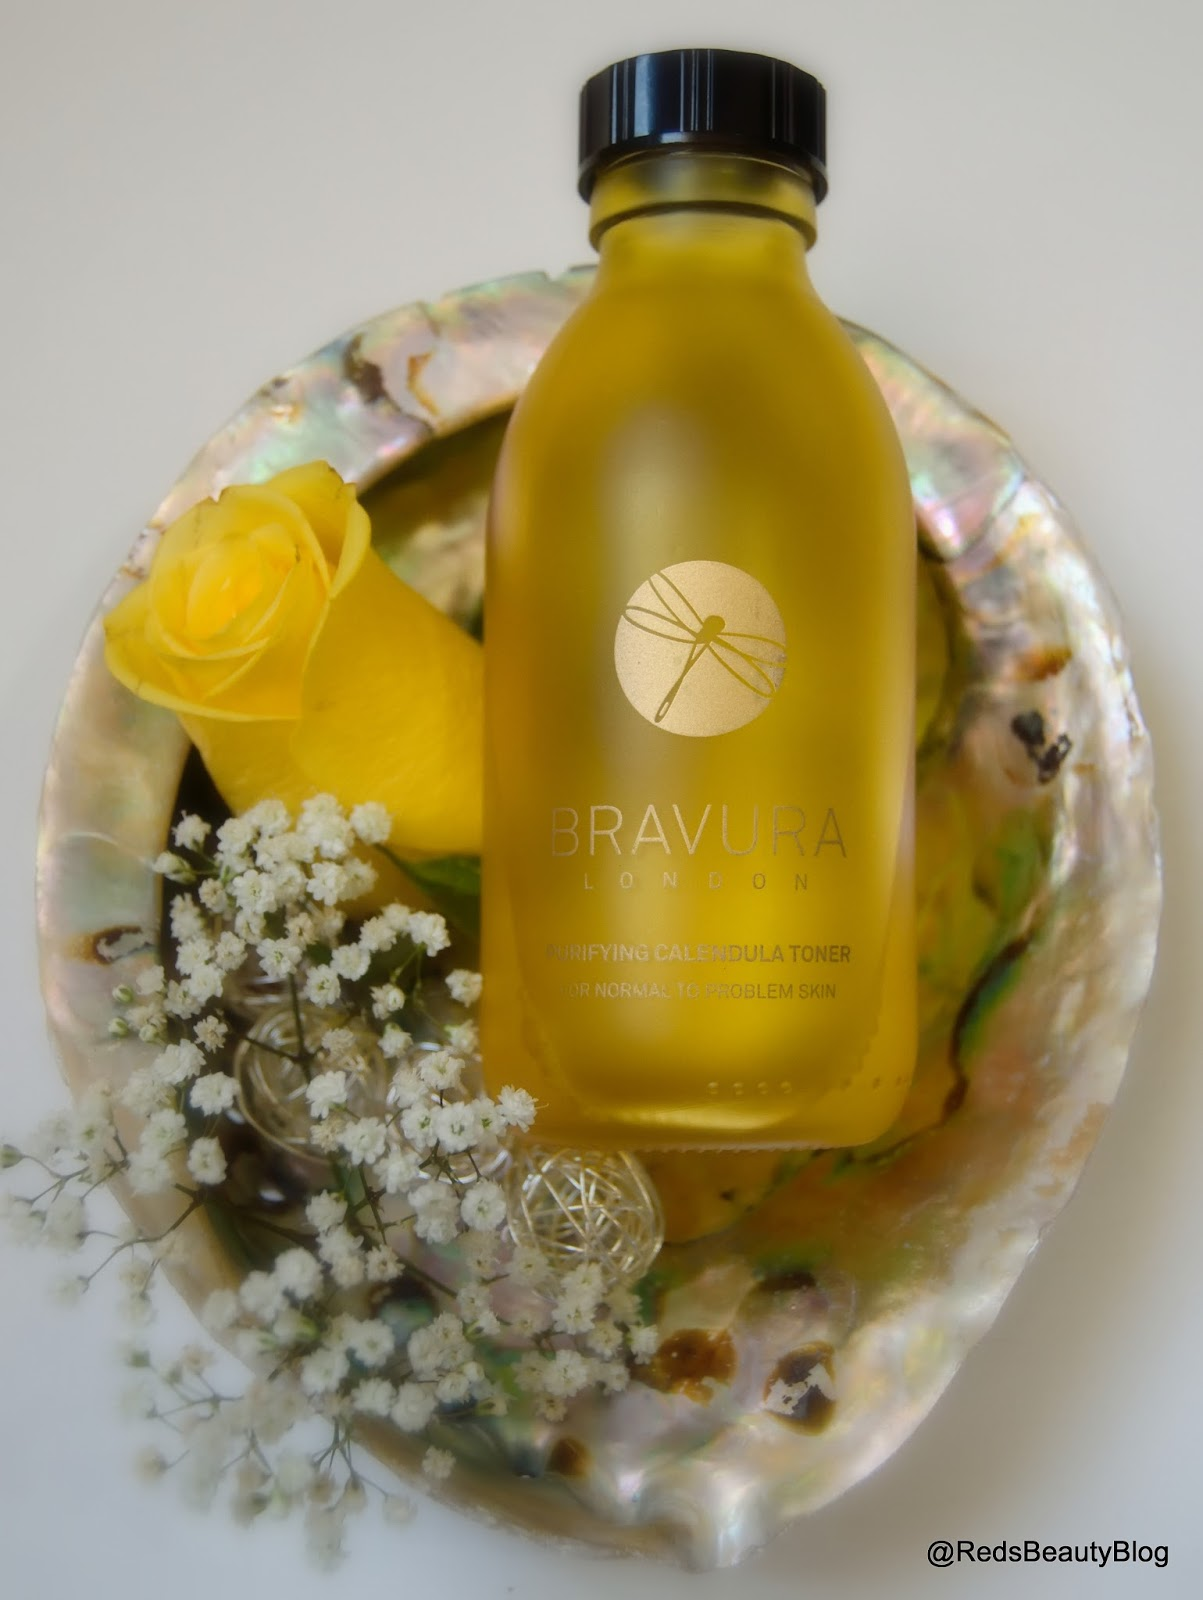 a picture of Bravura London Purifying Calendula Toner 13% AHA